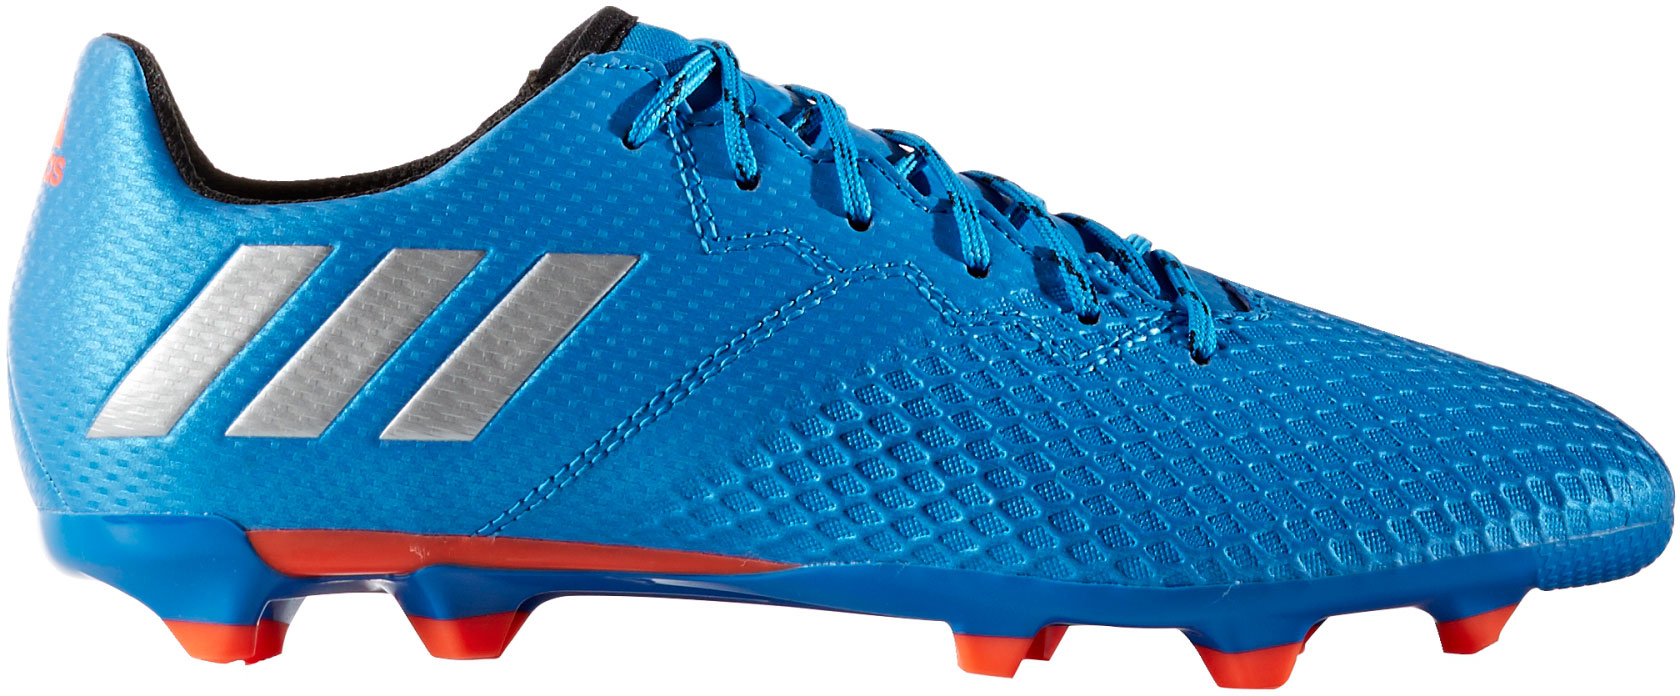 adidas messi or